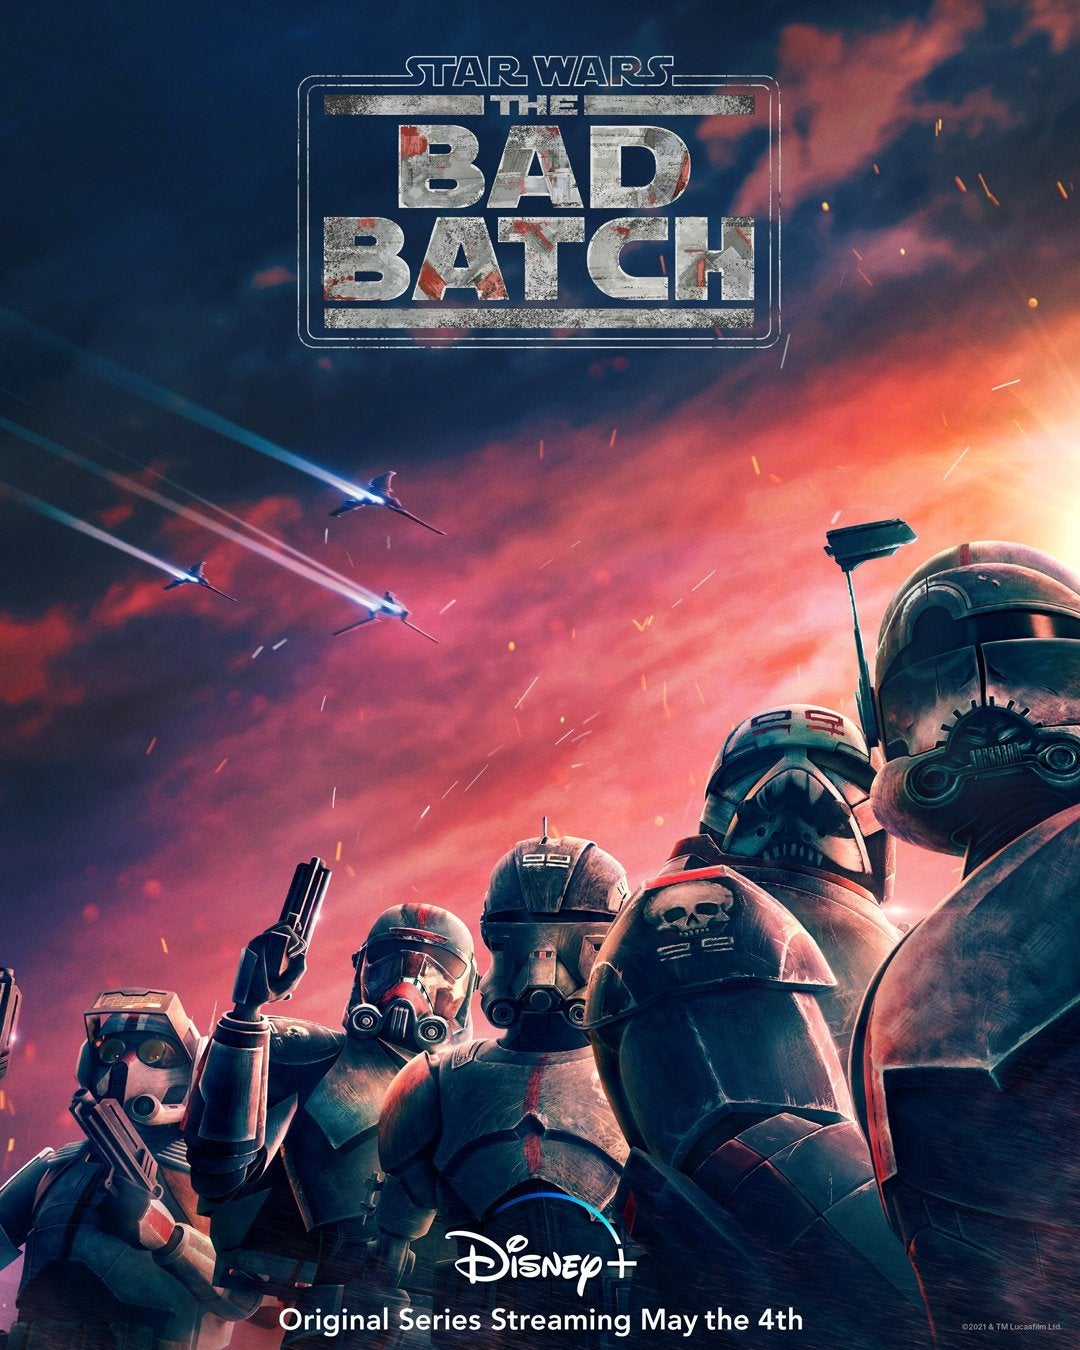 Star Wars: The Bad Batch Gets All-New Poster